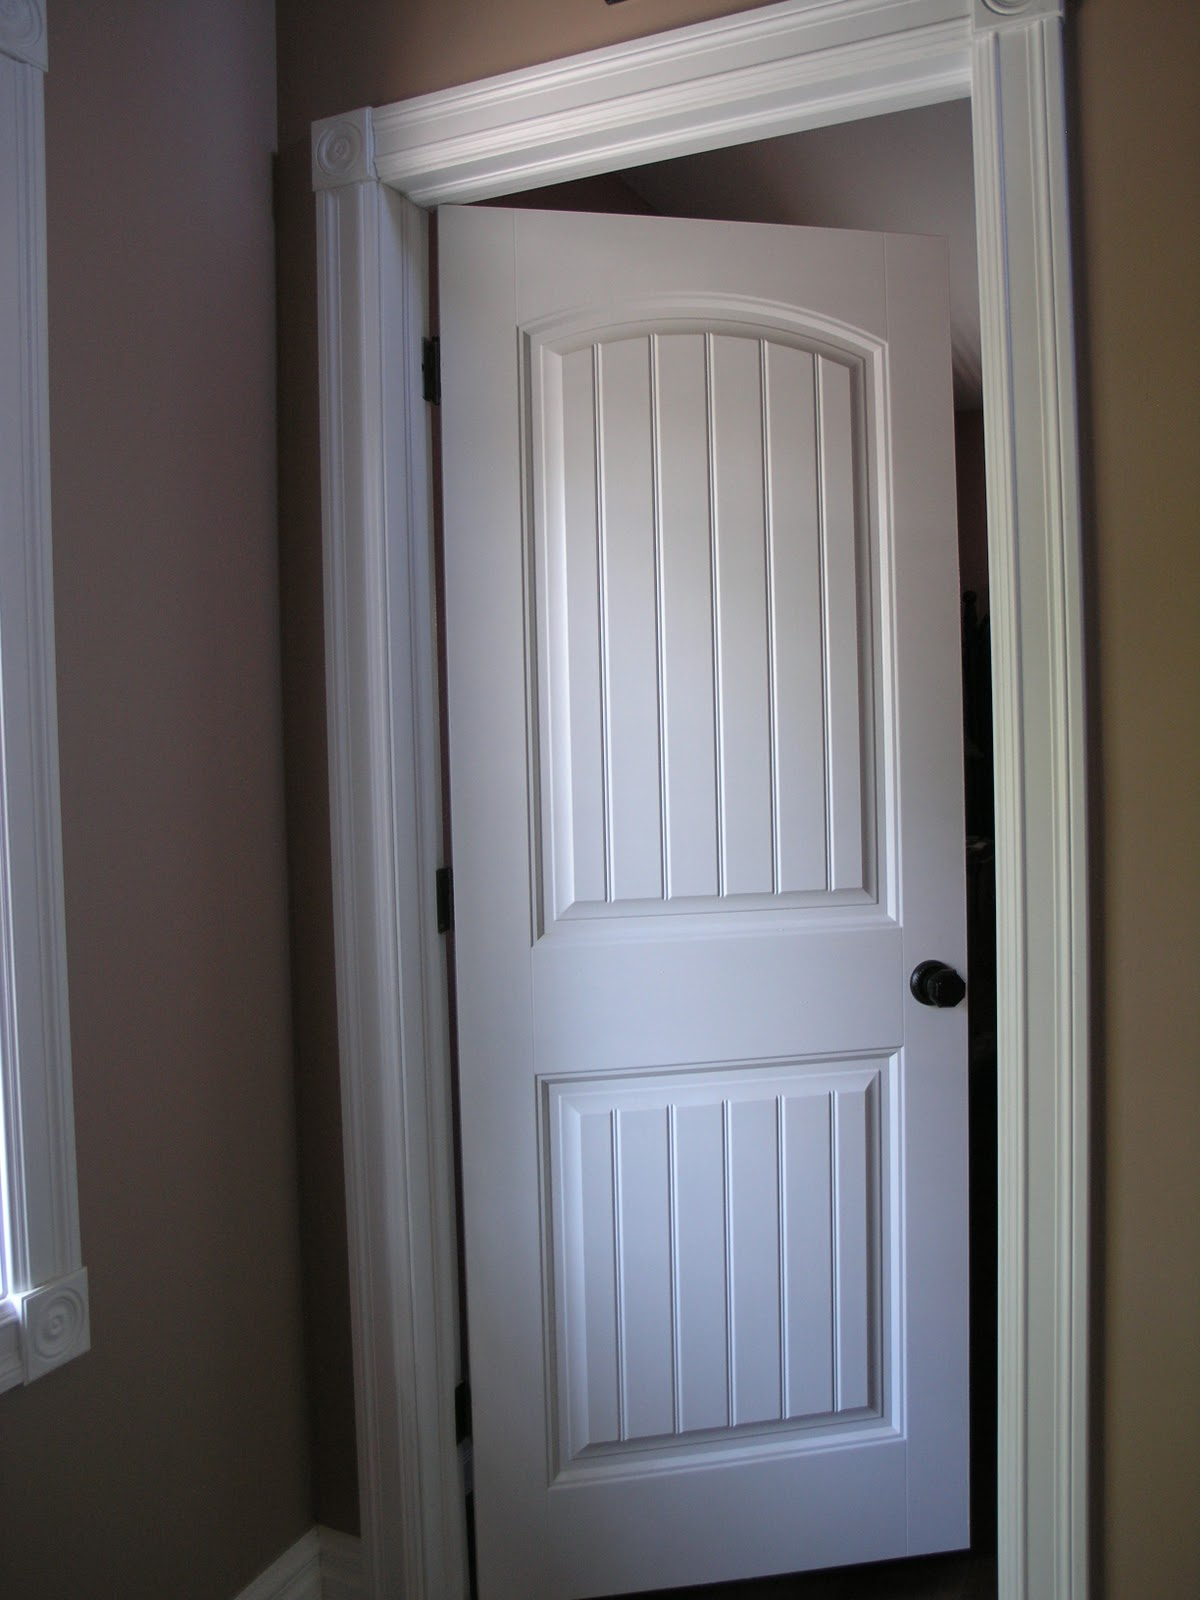 Door Frame: Door Frame And Trim